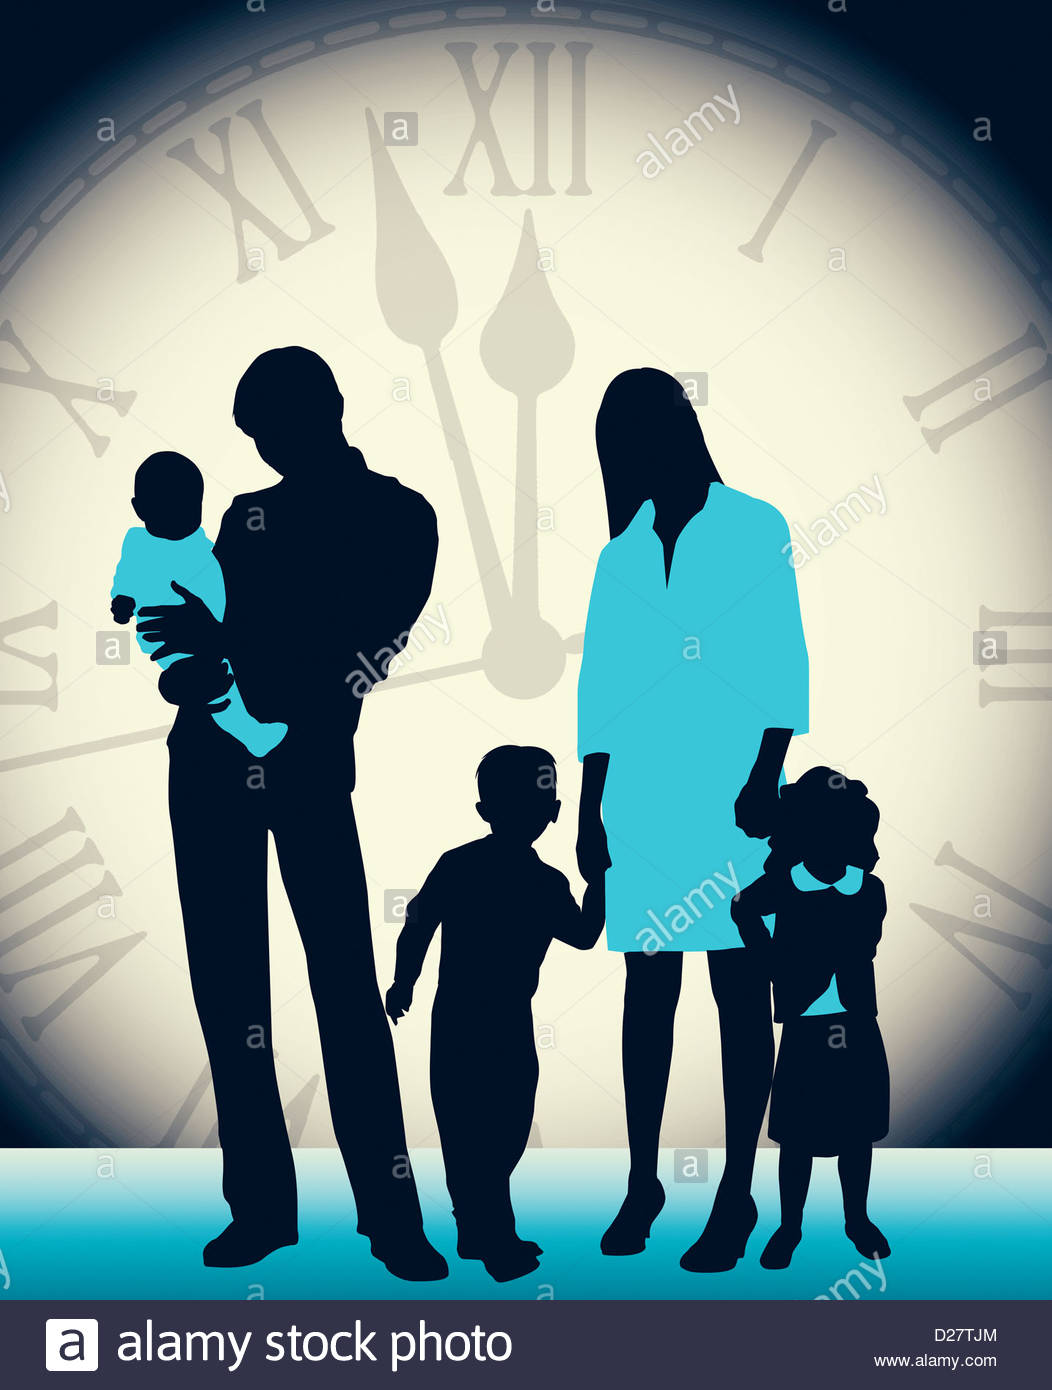 Large clock behind family - Stock Image